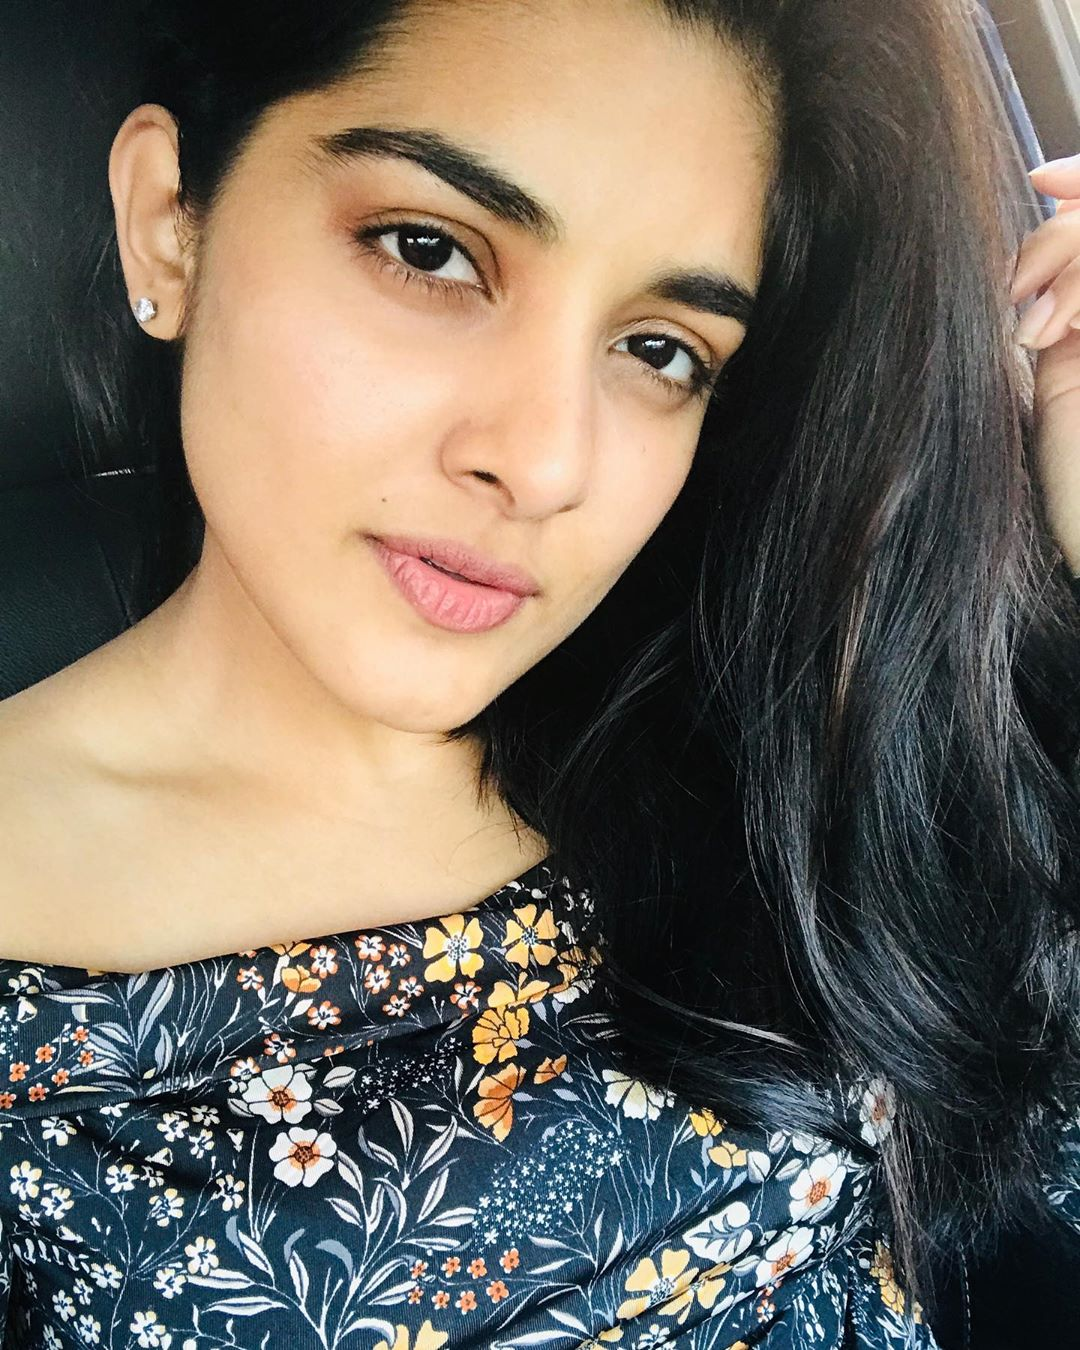 Nivetha Thomas Movies Net Worth, Images, Age, Height, Bio, Parents, Boyfriend, Facts